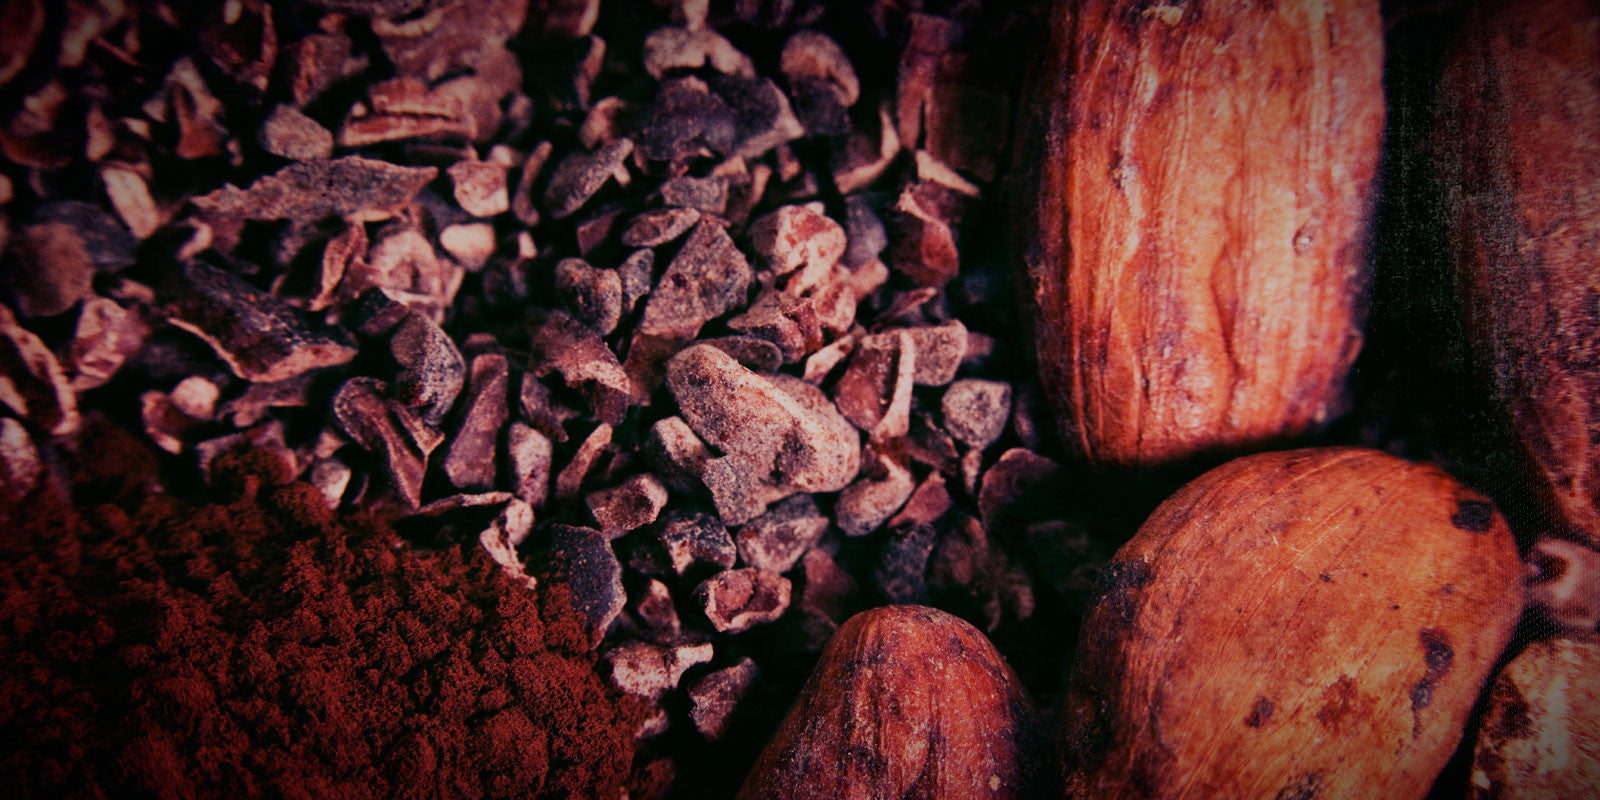 Big Tree Farms Cacao Products